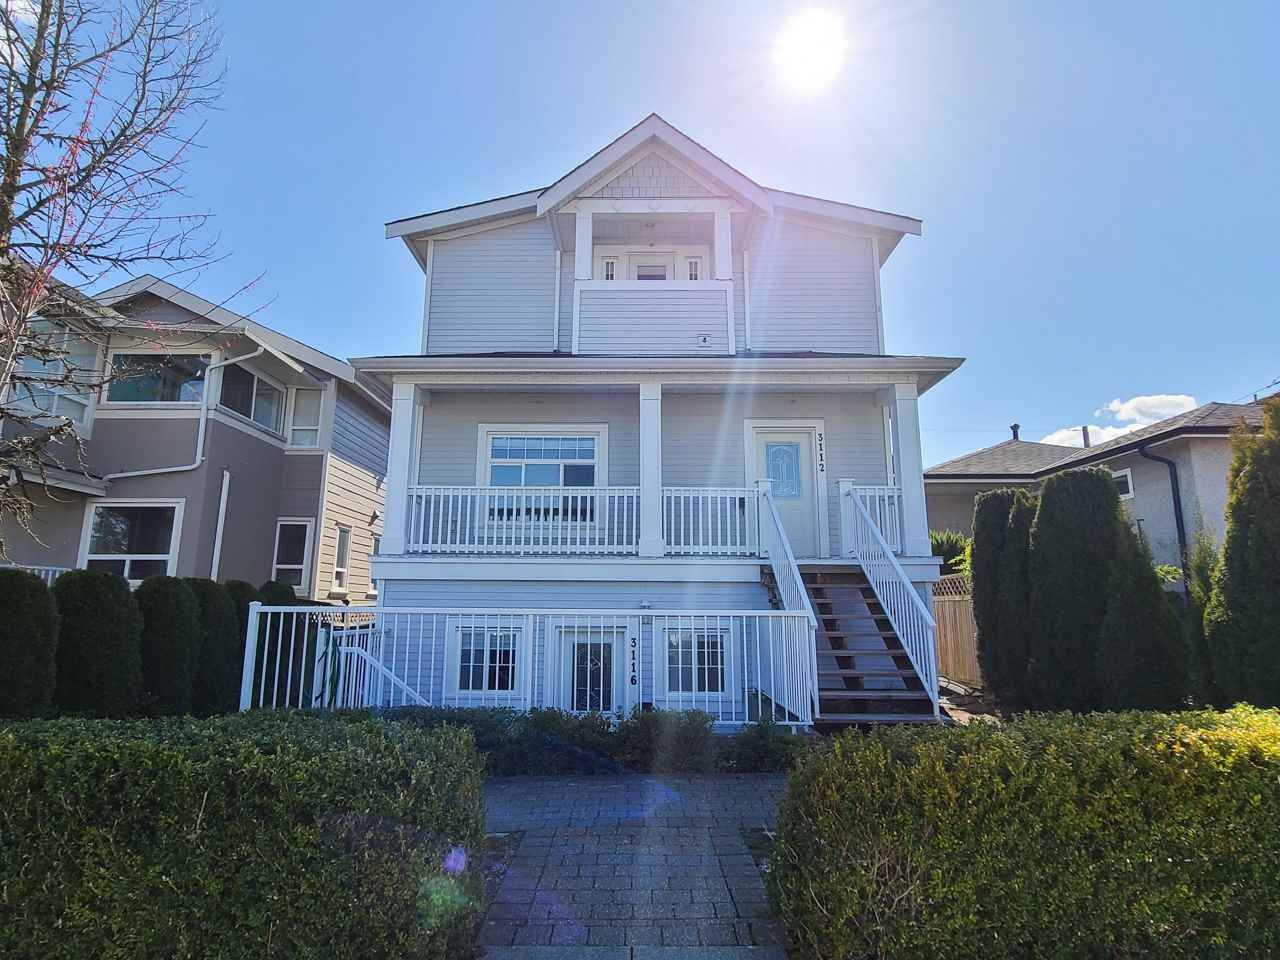 Main Photo: 3116 KINGS Avenue in Vancouver: Collingwood VE Townhouse for sale (Vancouver East)  : MLS®# R2569702